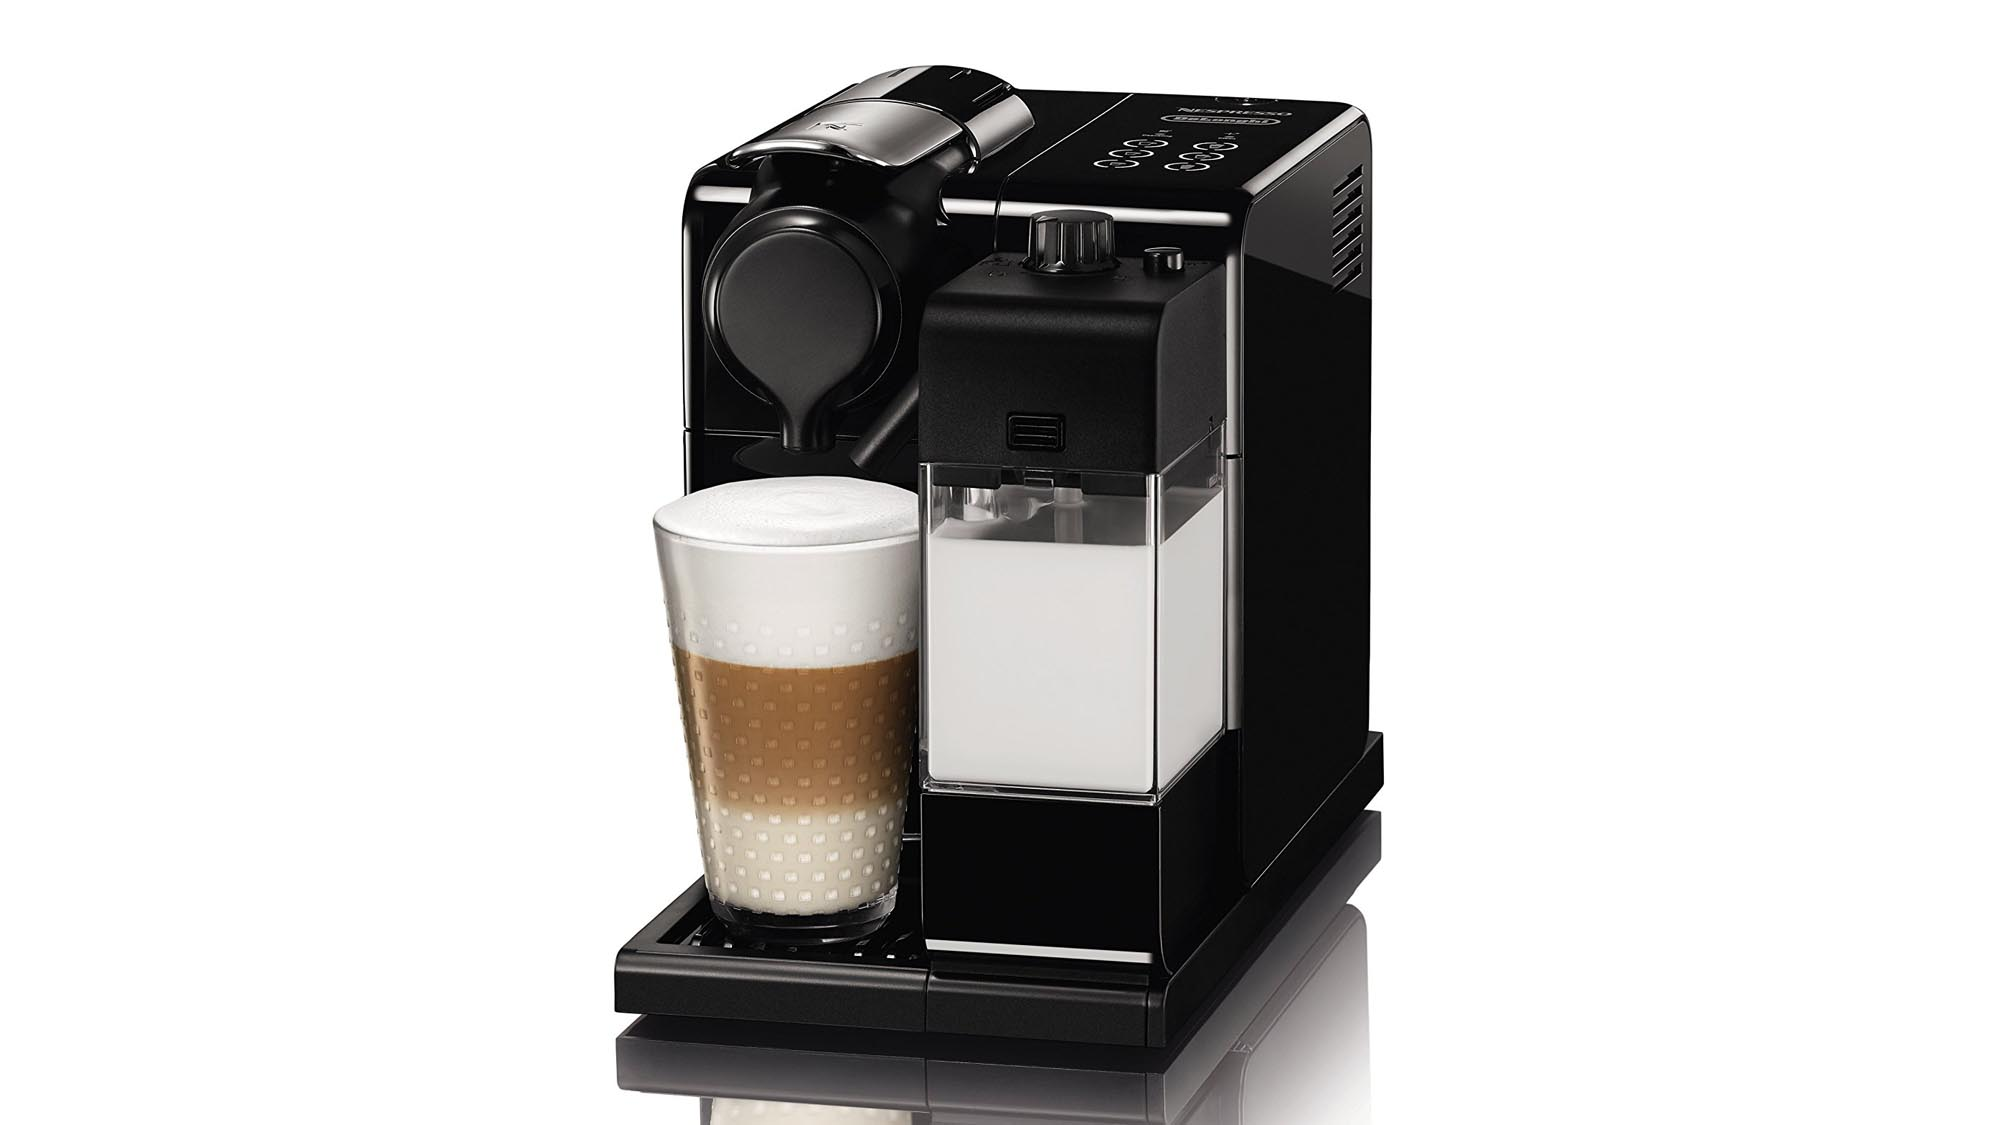 Italian Coffee Maker Pods : Best coffee machine 2018: How to pick the right coffee machine for you Expert Reviews